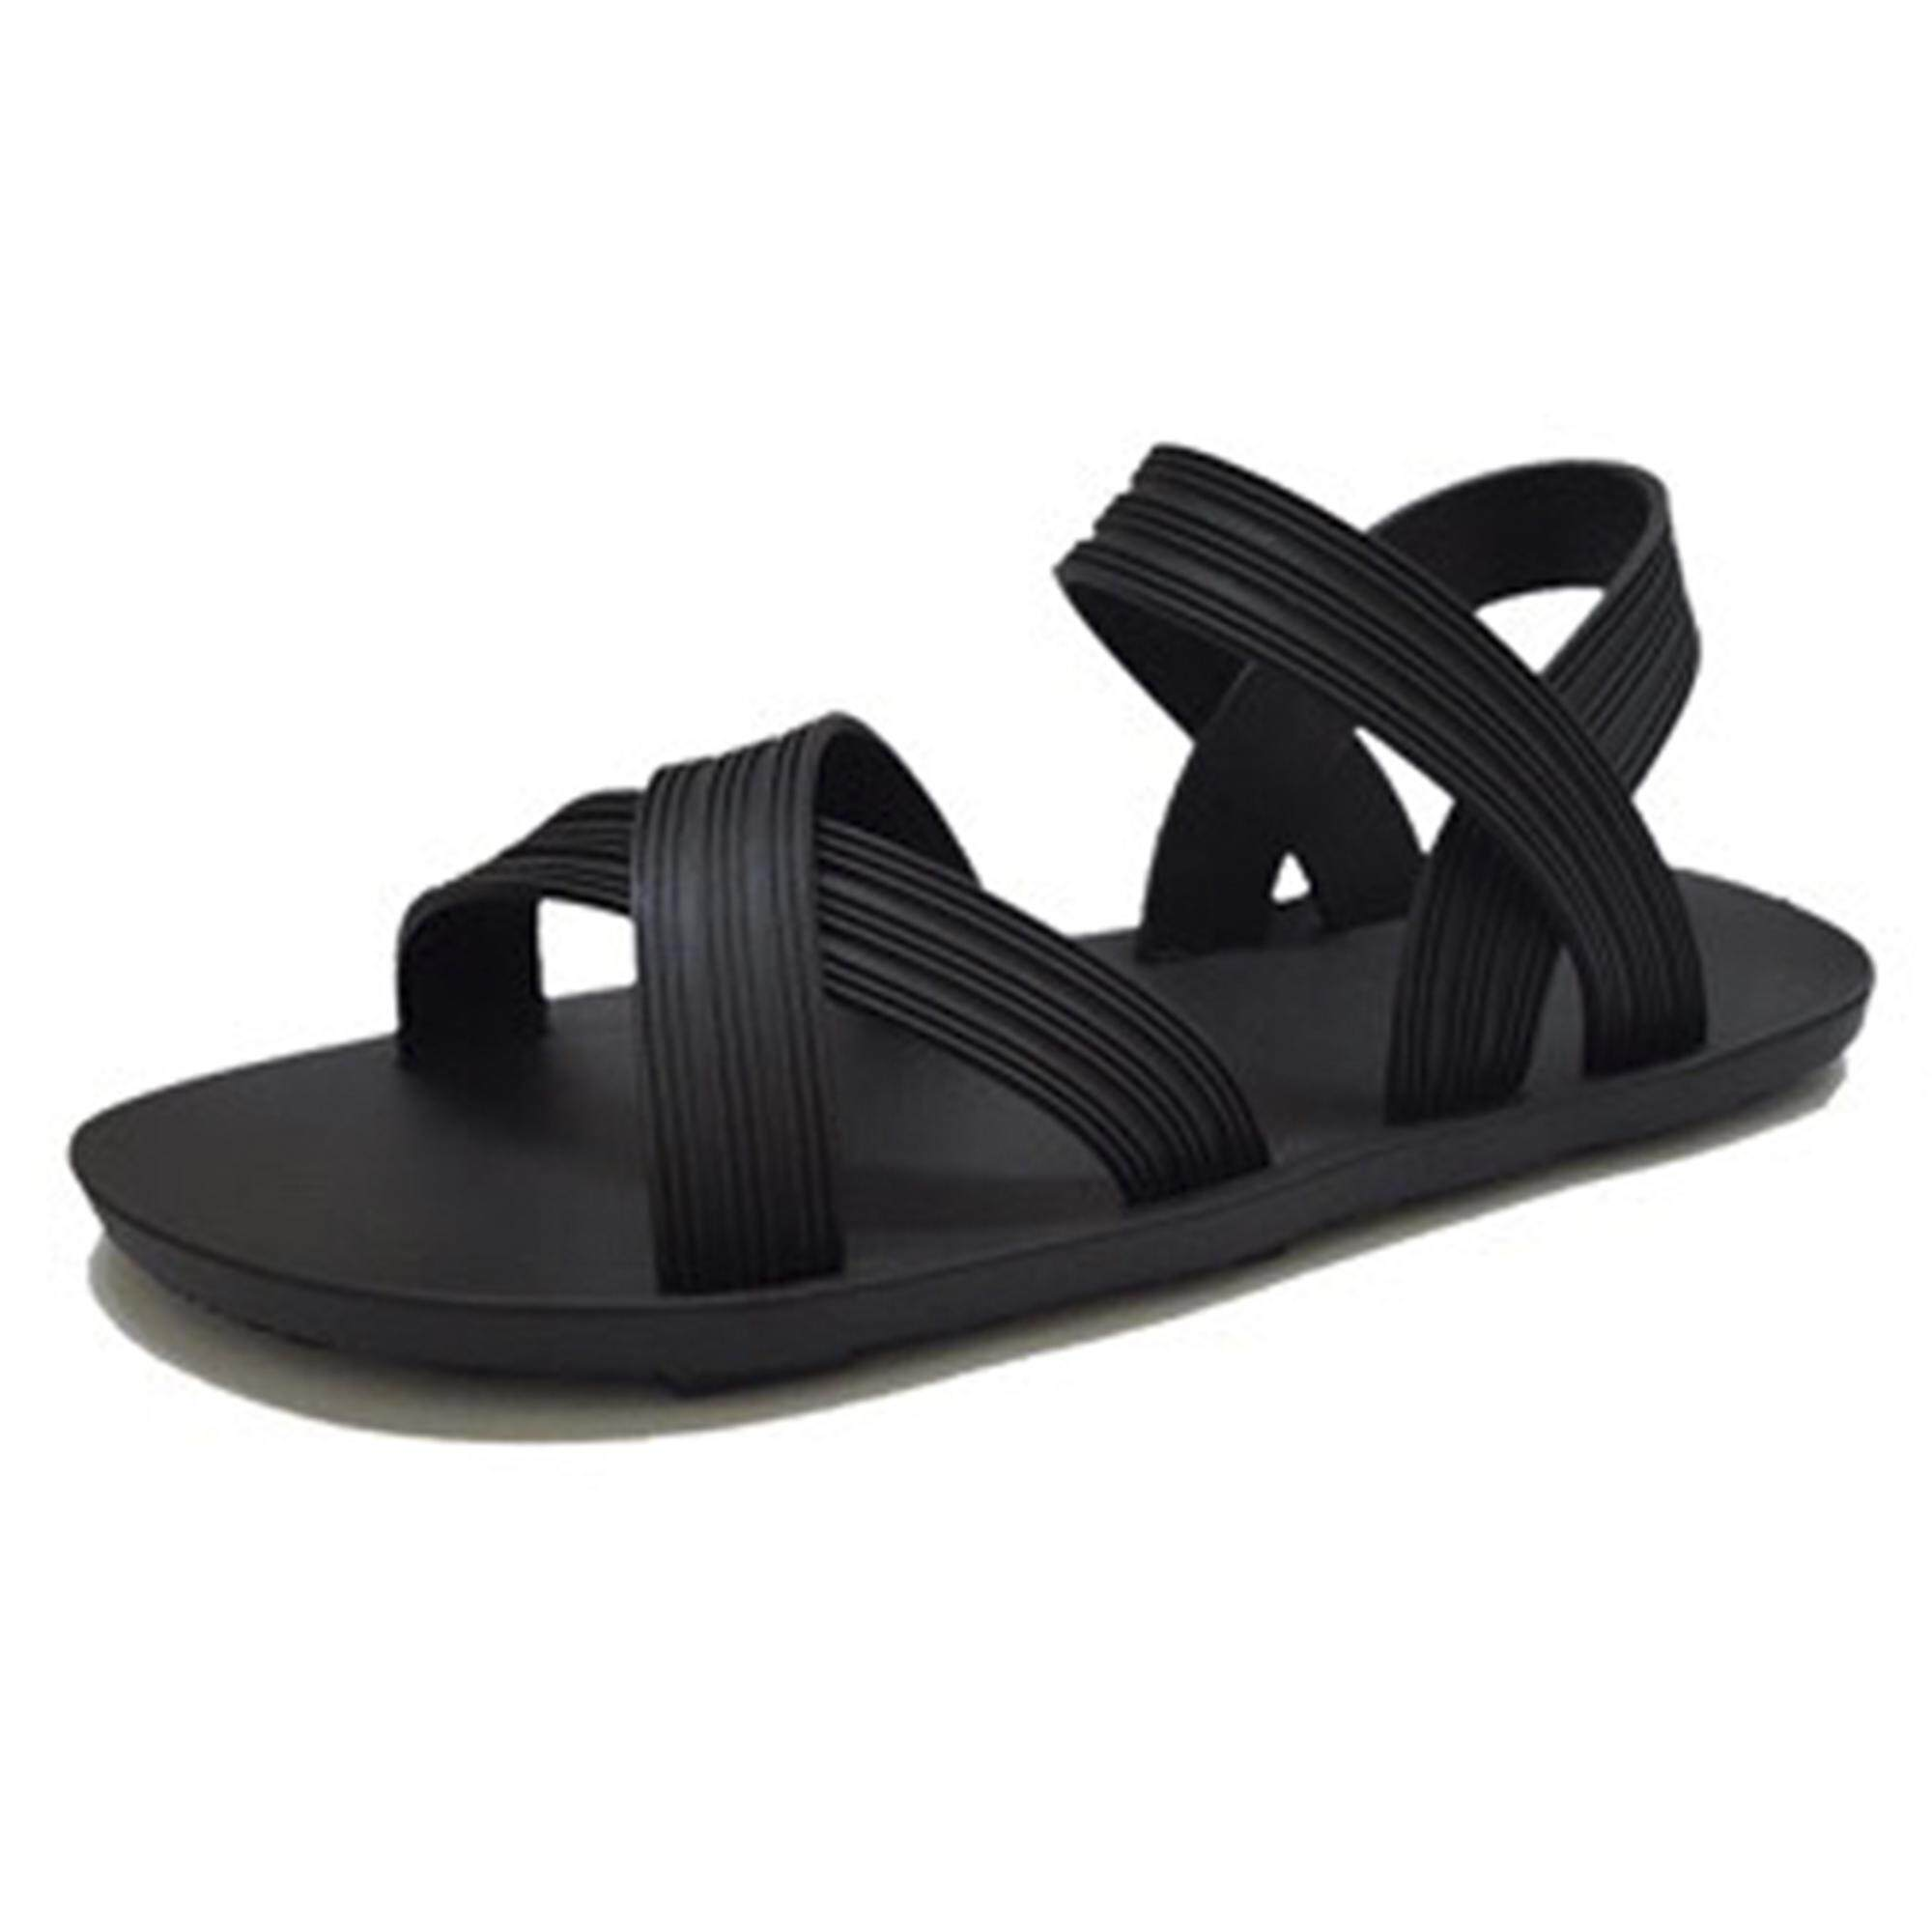 8d7b2dadf Women Flat sandals at Best Price In Malaysia